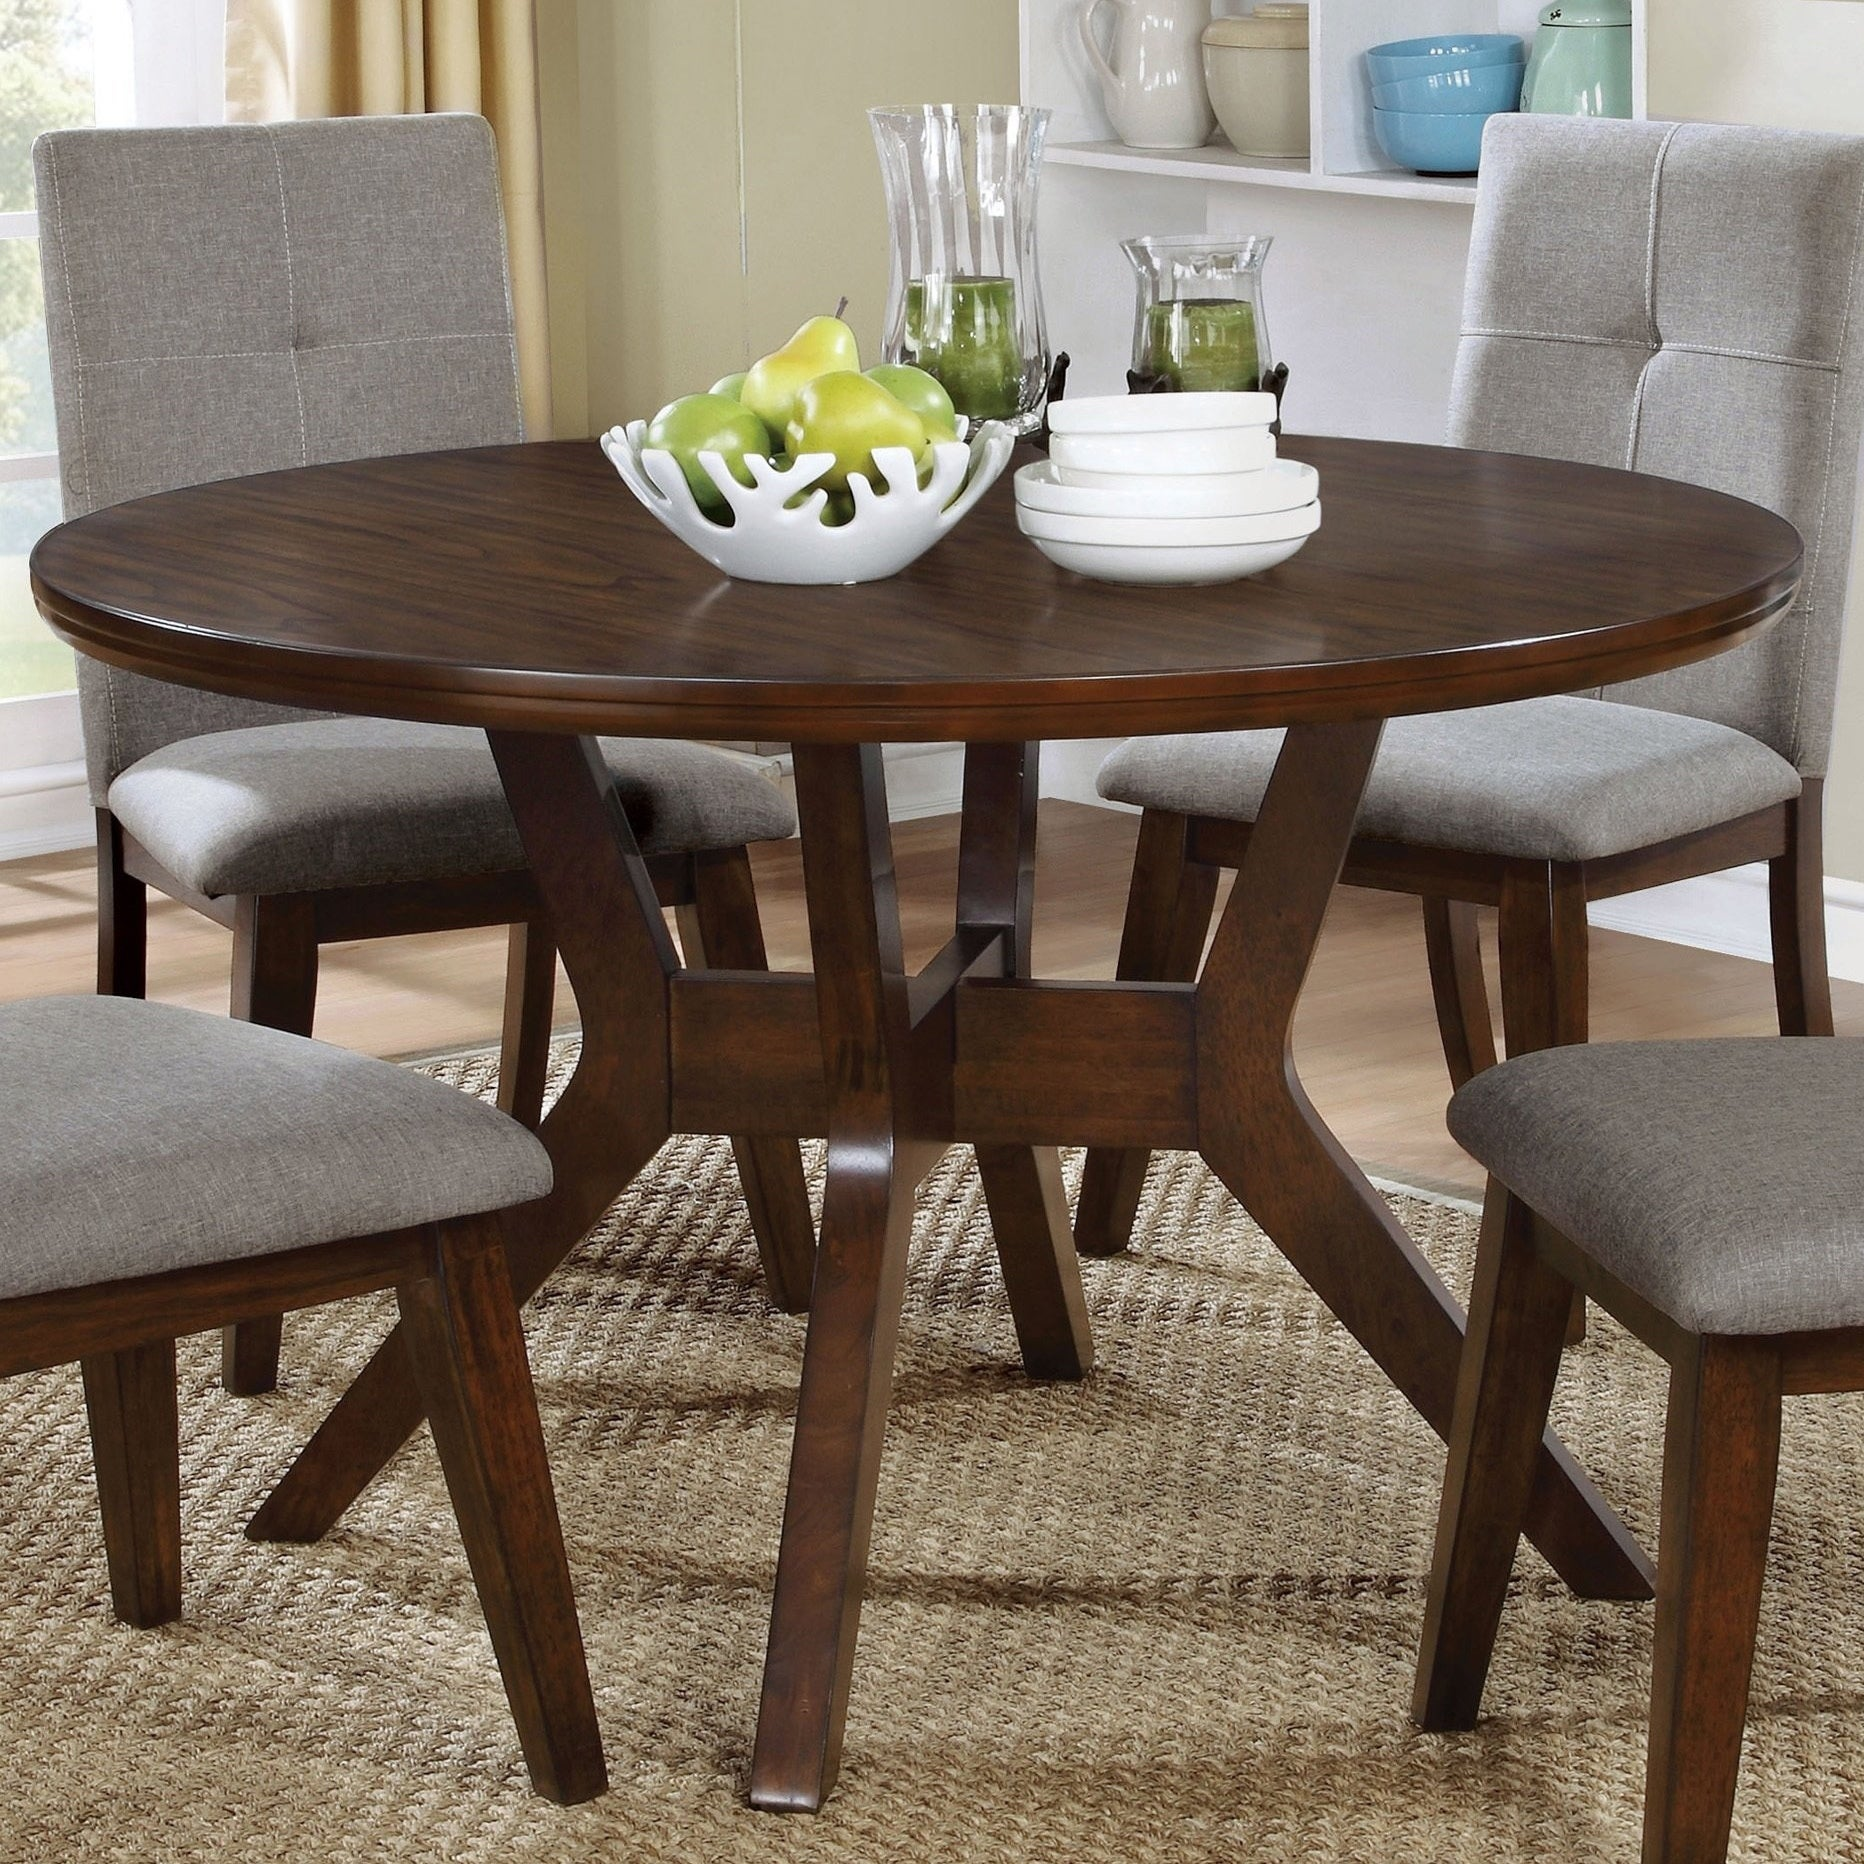 Furniture of America Yria Contemporary Walnut 48-inch Dining Table